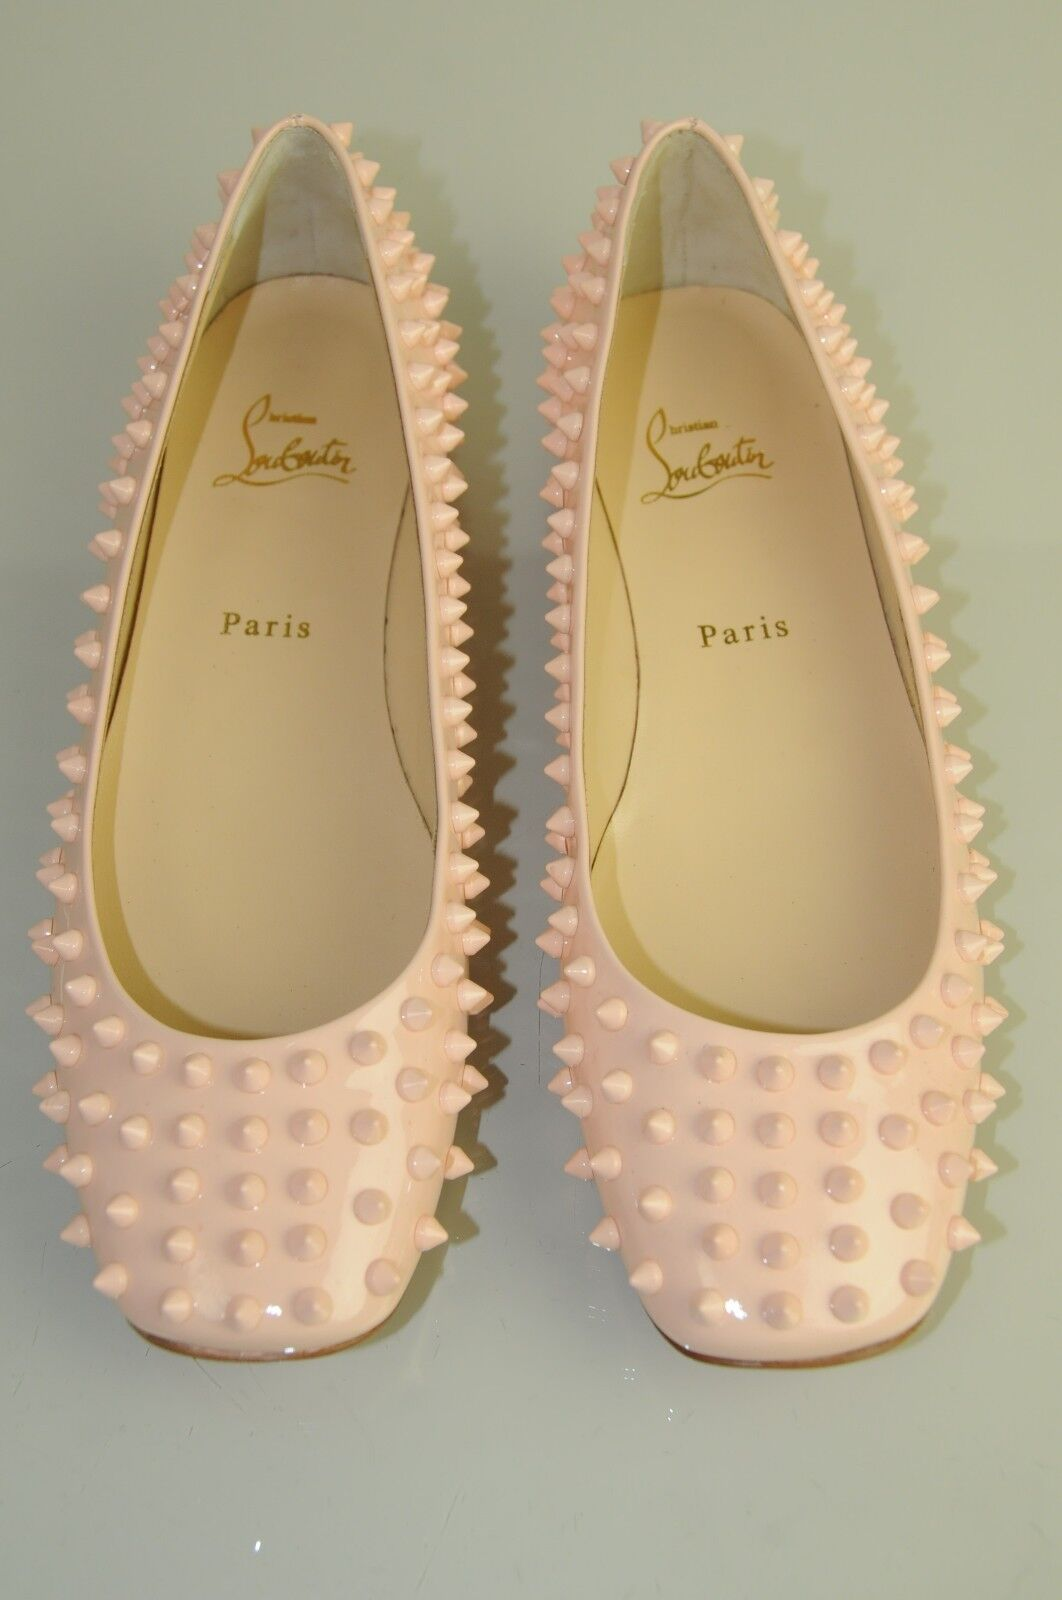 bbad91e1dea NEW Christian Louboutin Gozul Spikes Flat Patent NUDE Pink Ballets Shoes  40.5